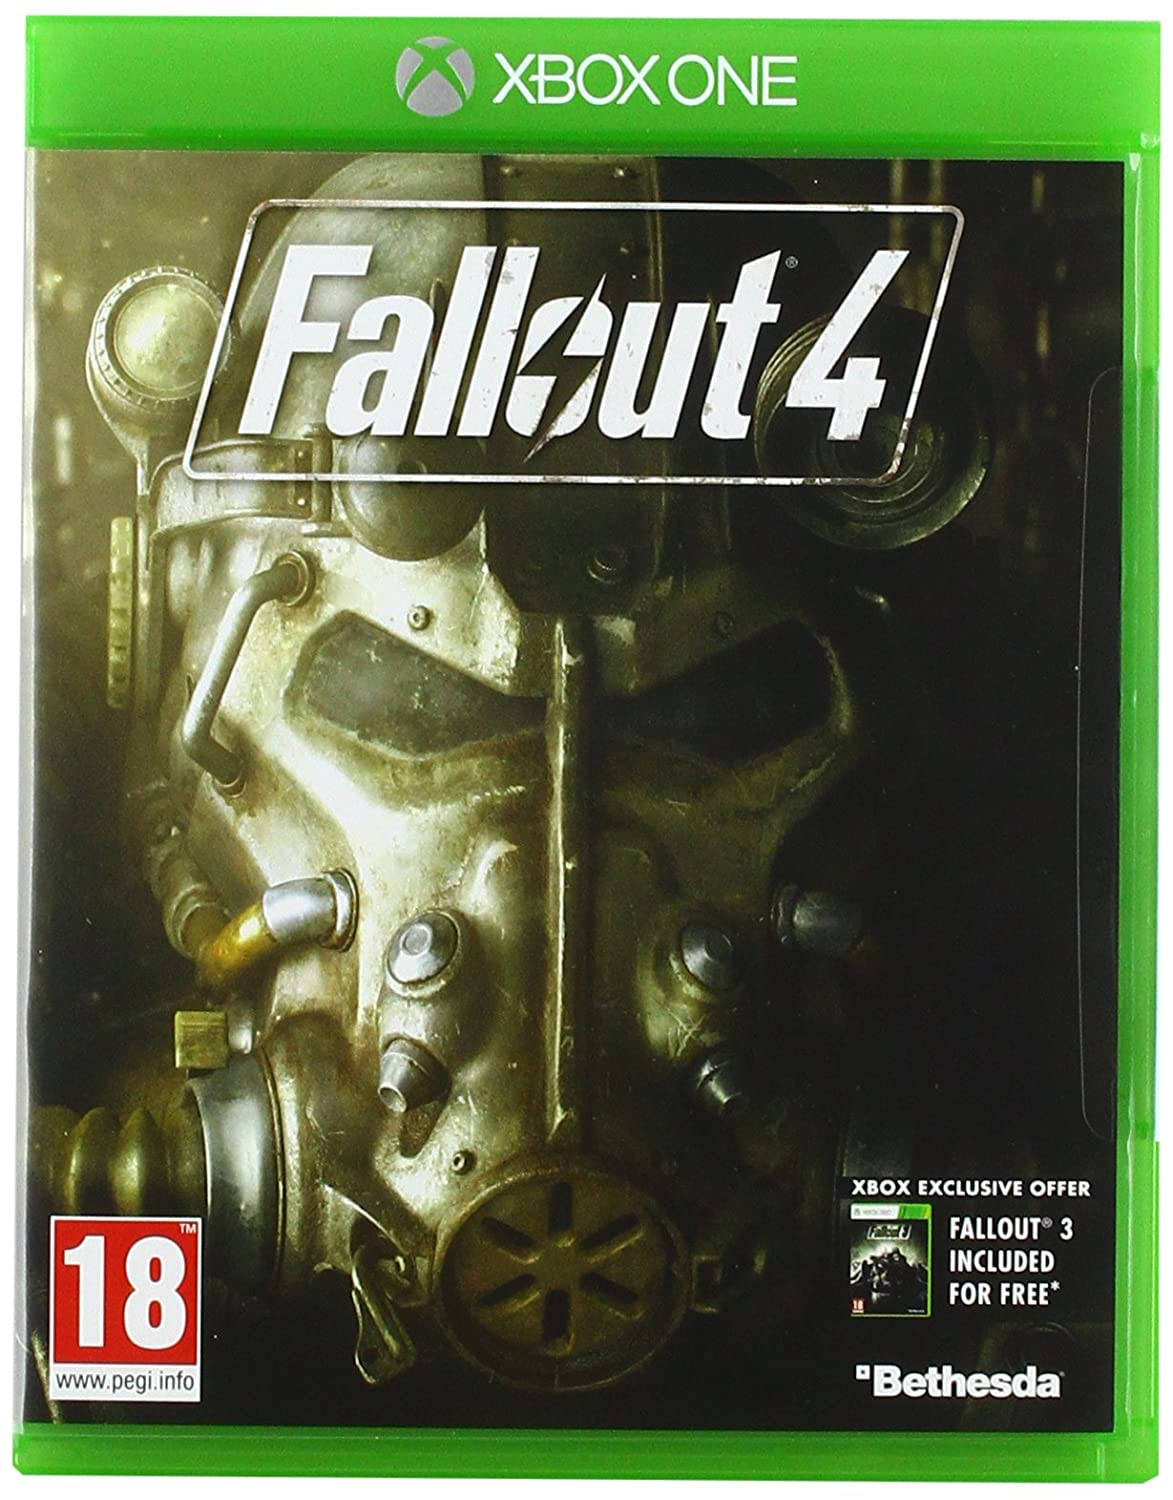 Fallout 4 Item Codes